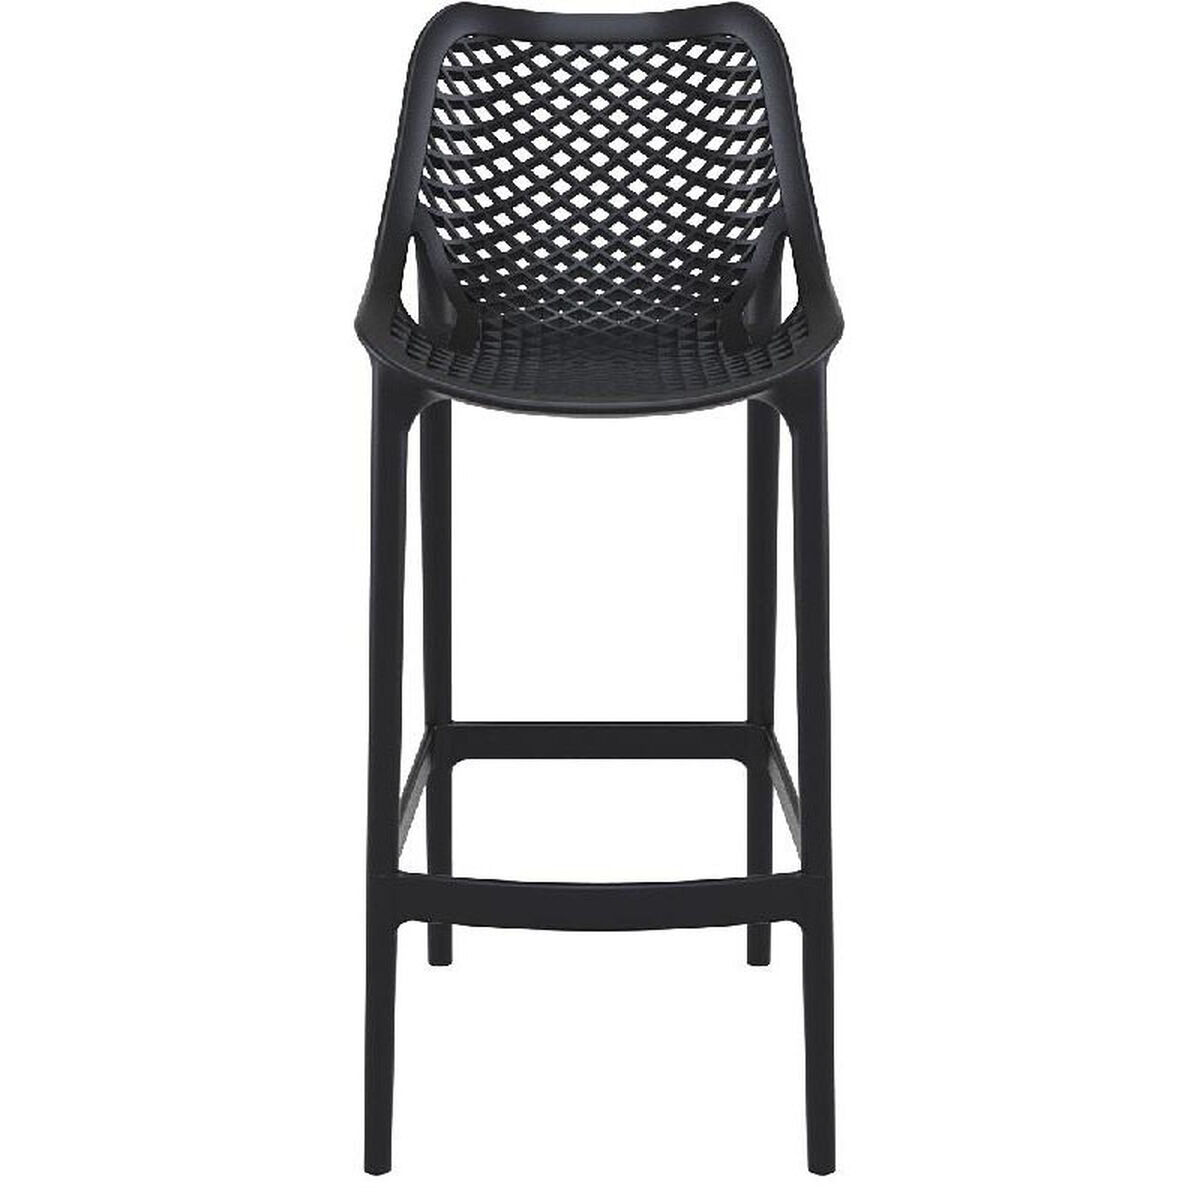 Black Resin Outdoor Barstool Isp068 Bla